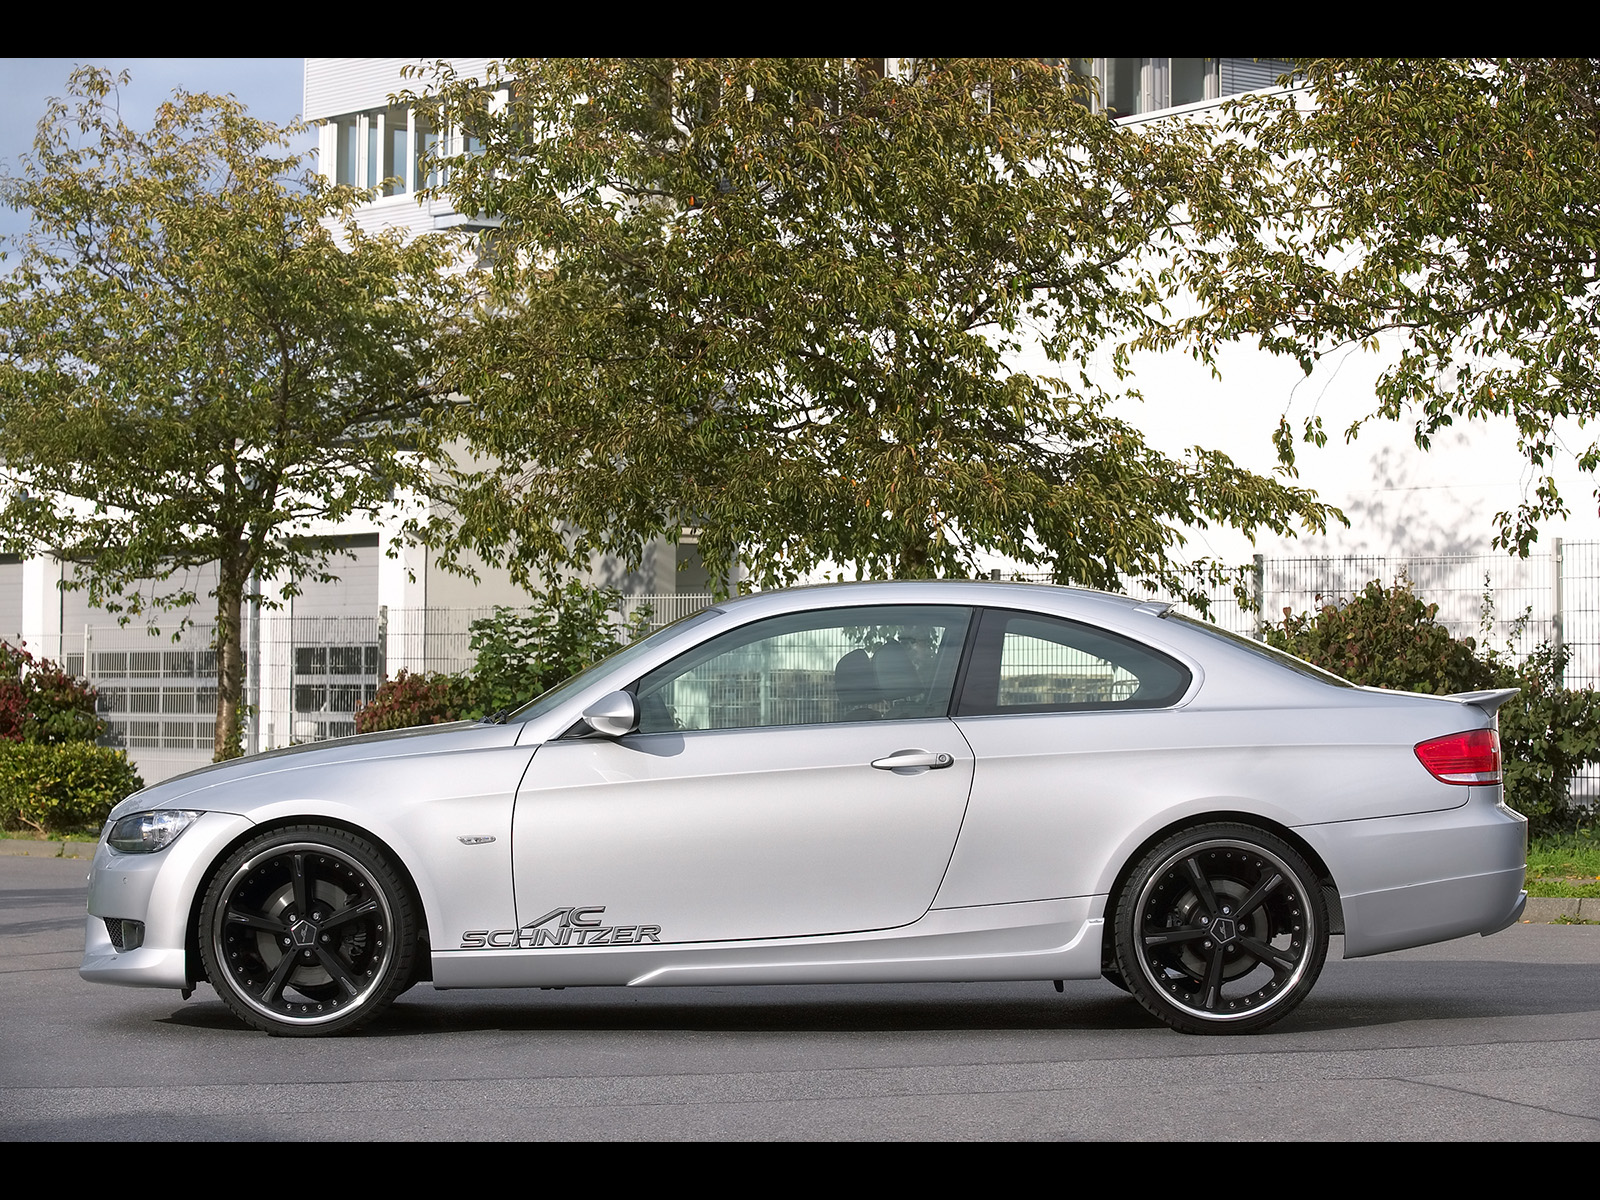 2006 ac schnitzer e92 3 series coupe. Black Bedroom Furniture Sets. Home Design Ideas